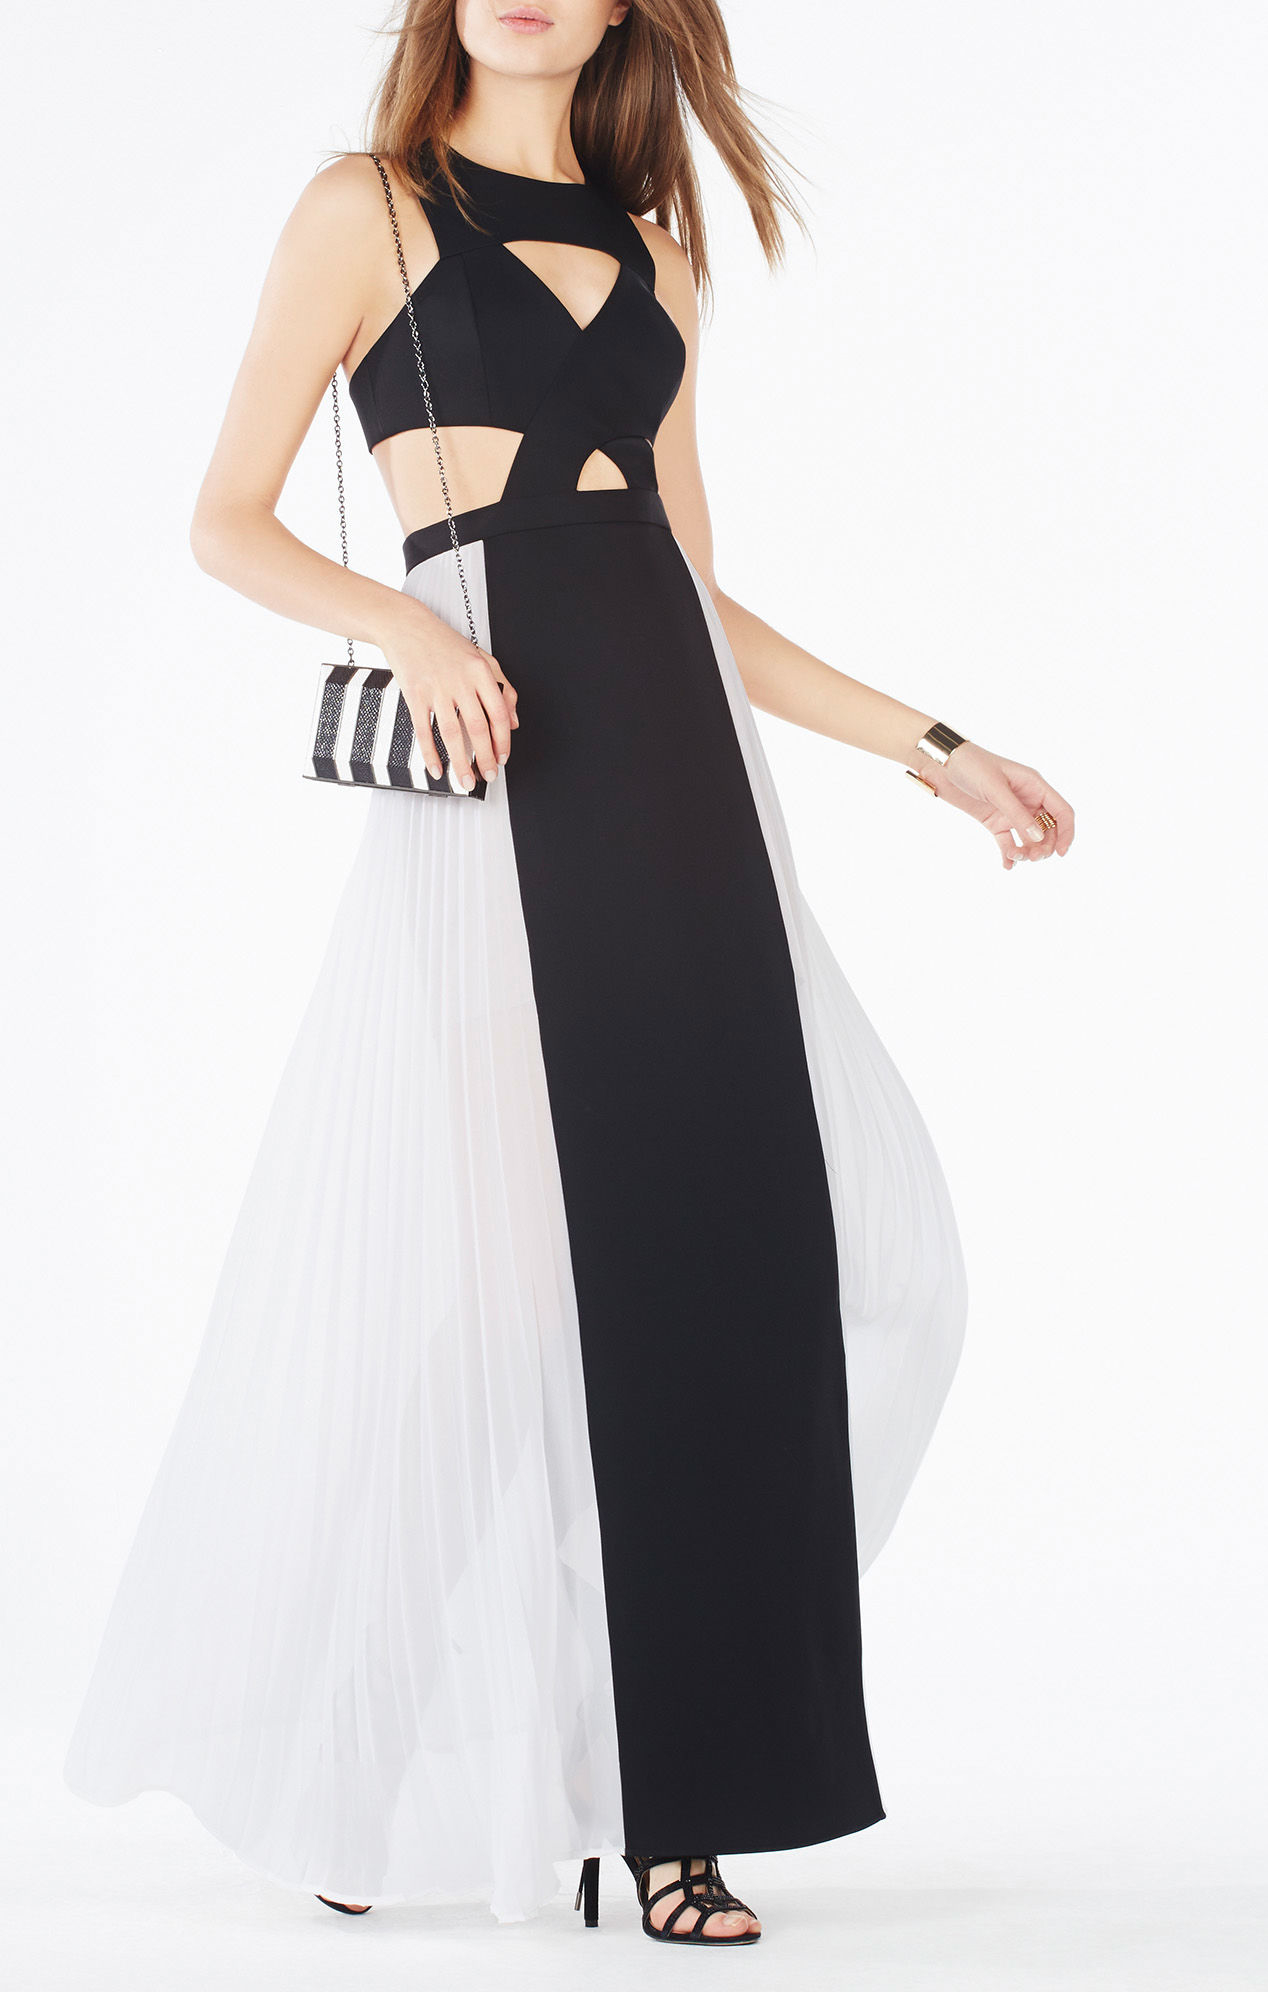 BCBGMAXAZRIA Giselle Cutout Pleated Gown size 6   The Volte